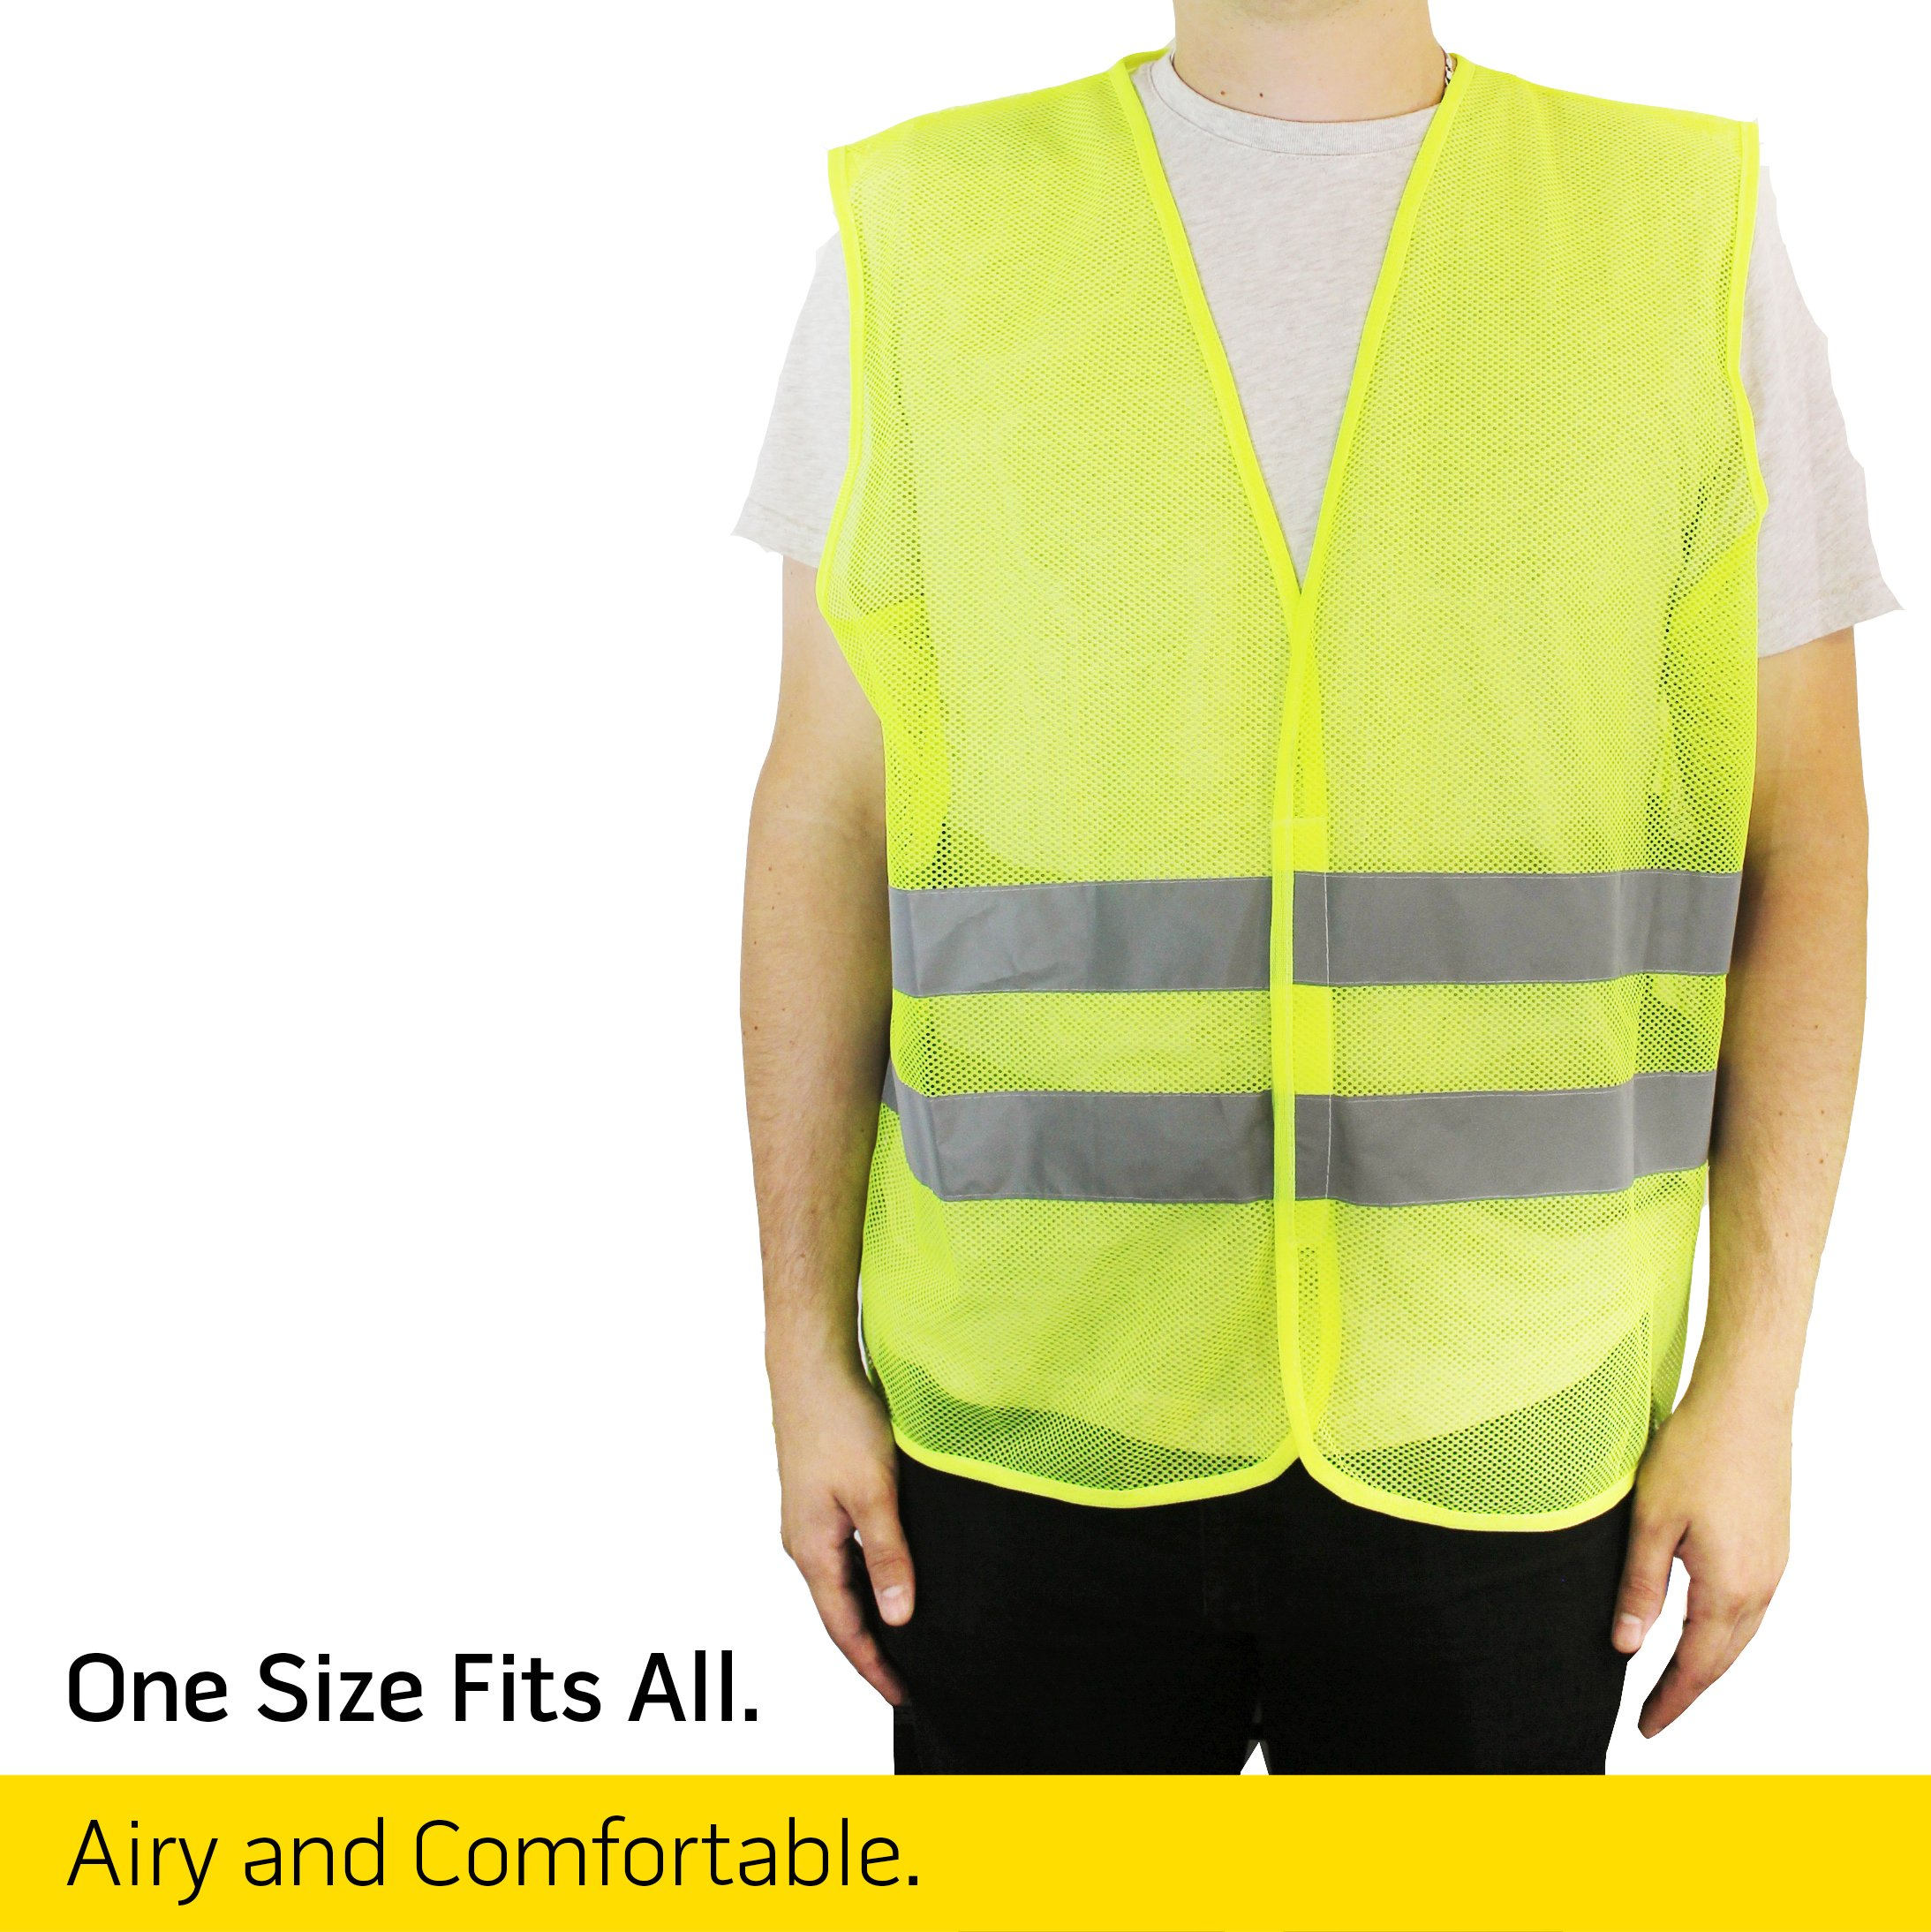 PeerBasics, 10 Pack, Yellow Reflective Safety Vest, Silver Strip, Bright Breathable Neon Yellow (Mesh, 10) by PeerBasics (Image #5)